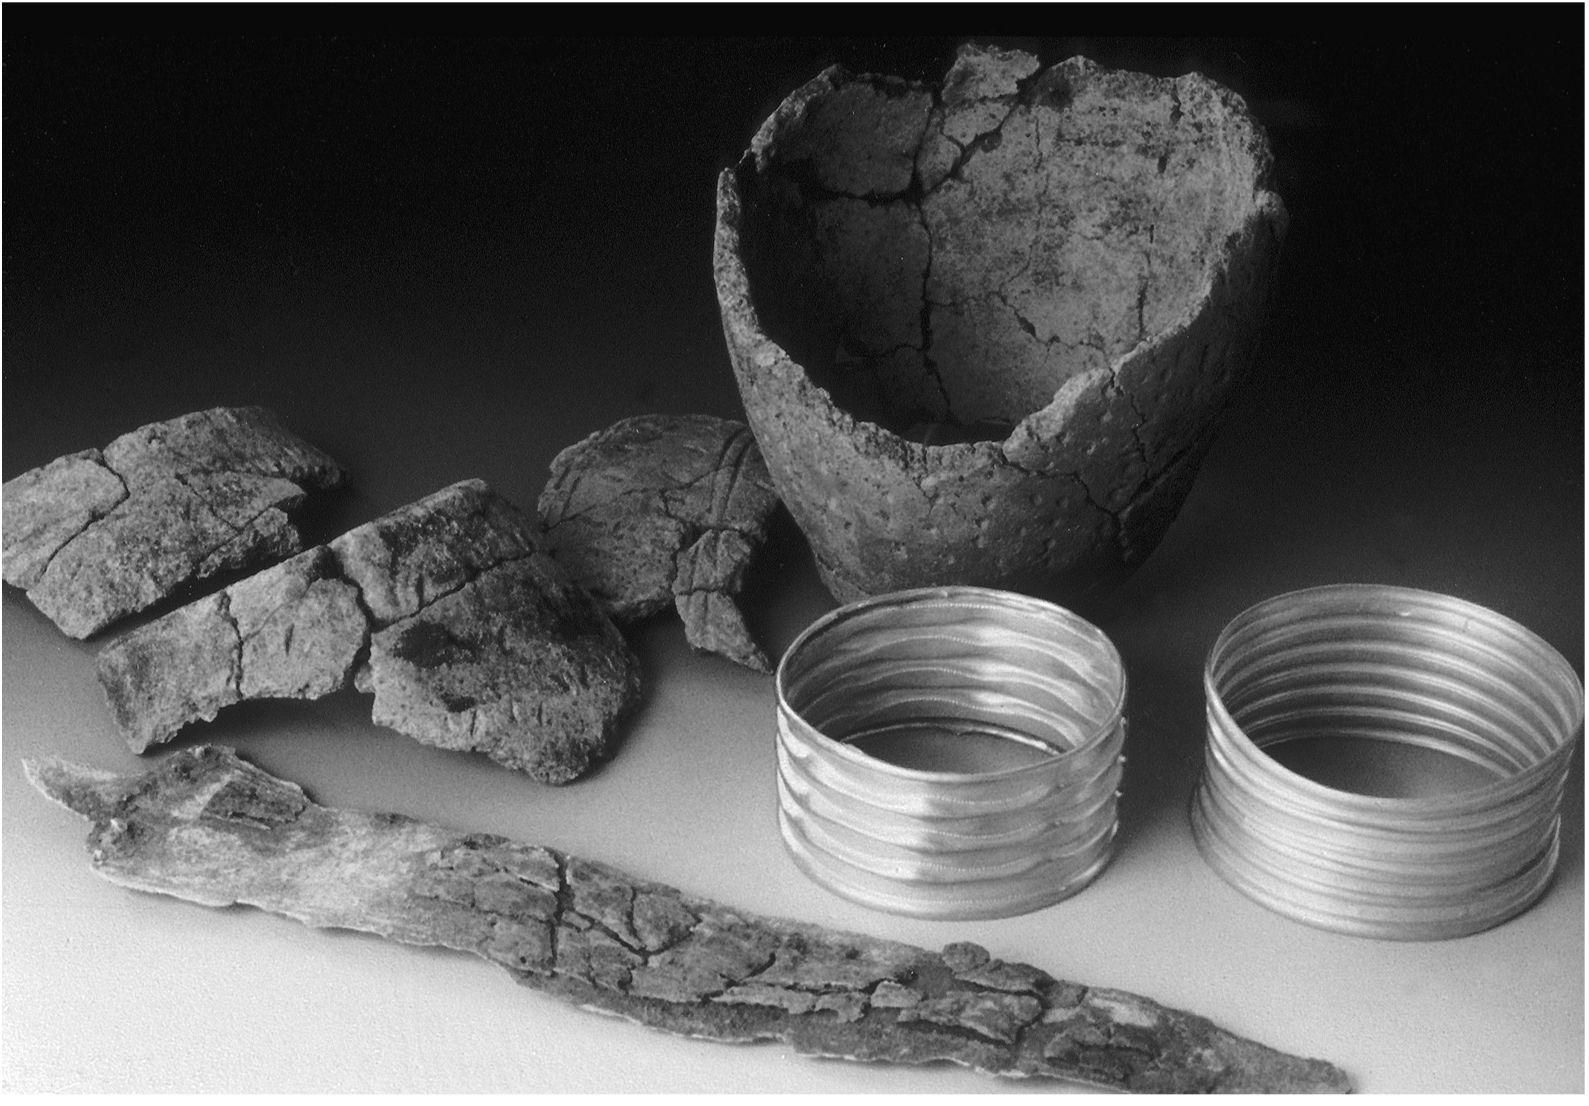 A photo showing a range of artifacts. Two ridged gold armlets appear in almost perfect condition, but all other items are badly worn and cracked. a dotted pattern can be made out on the surface of the pottery.